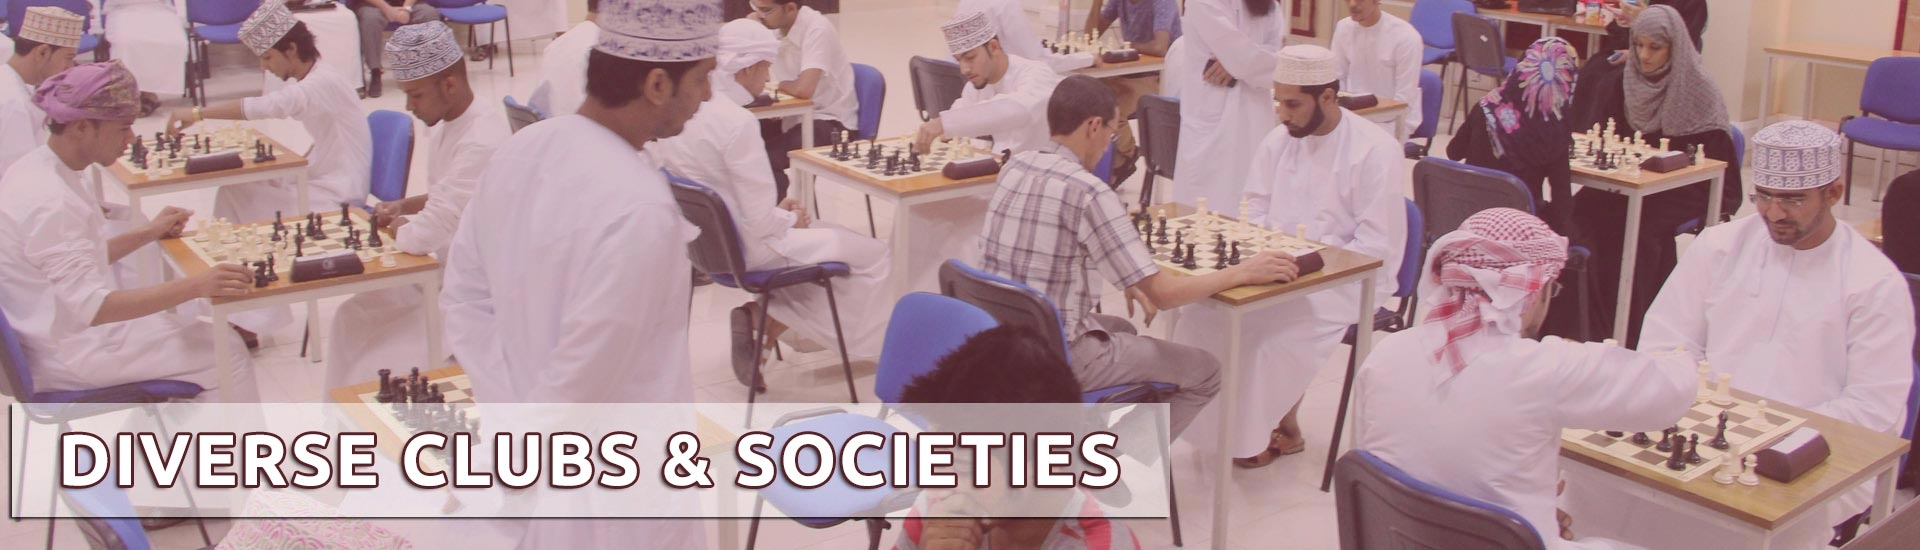 Diverse Clubs & Societies